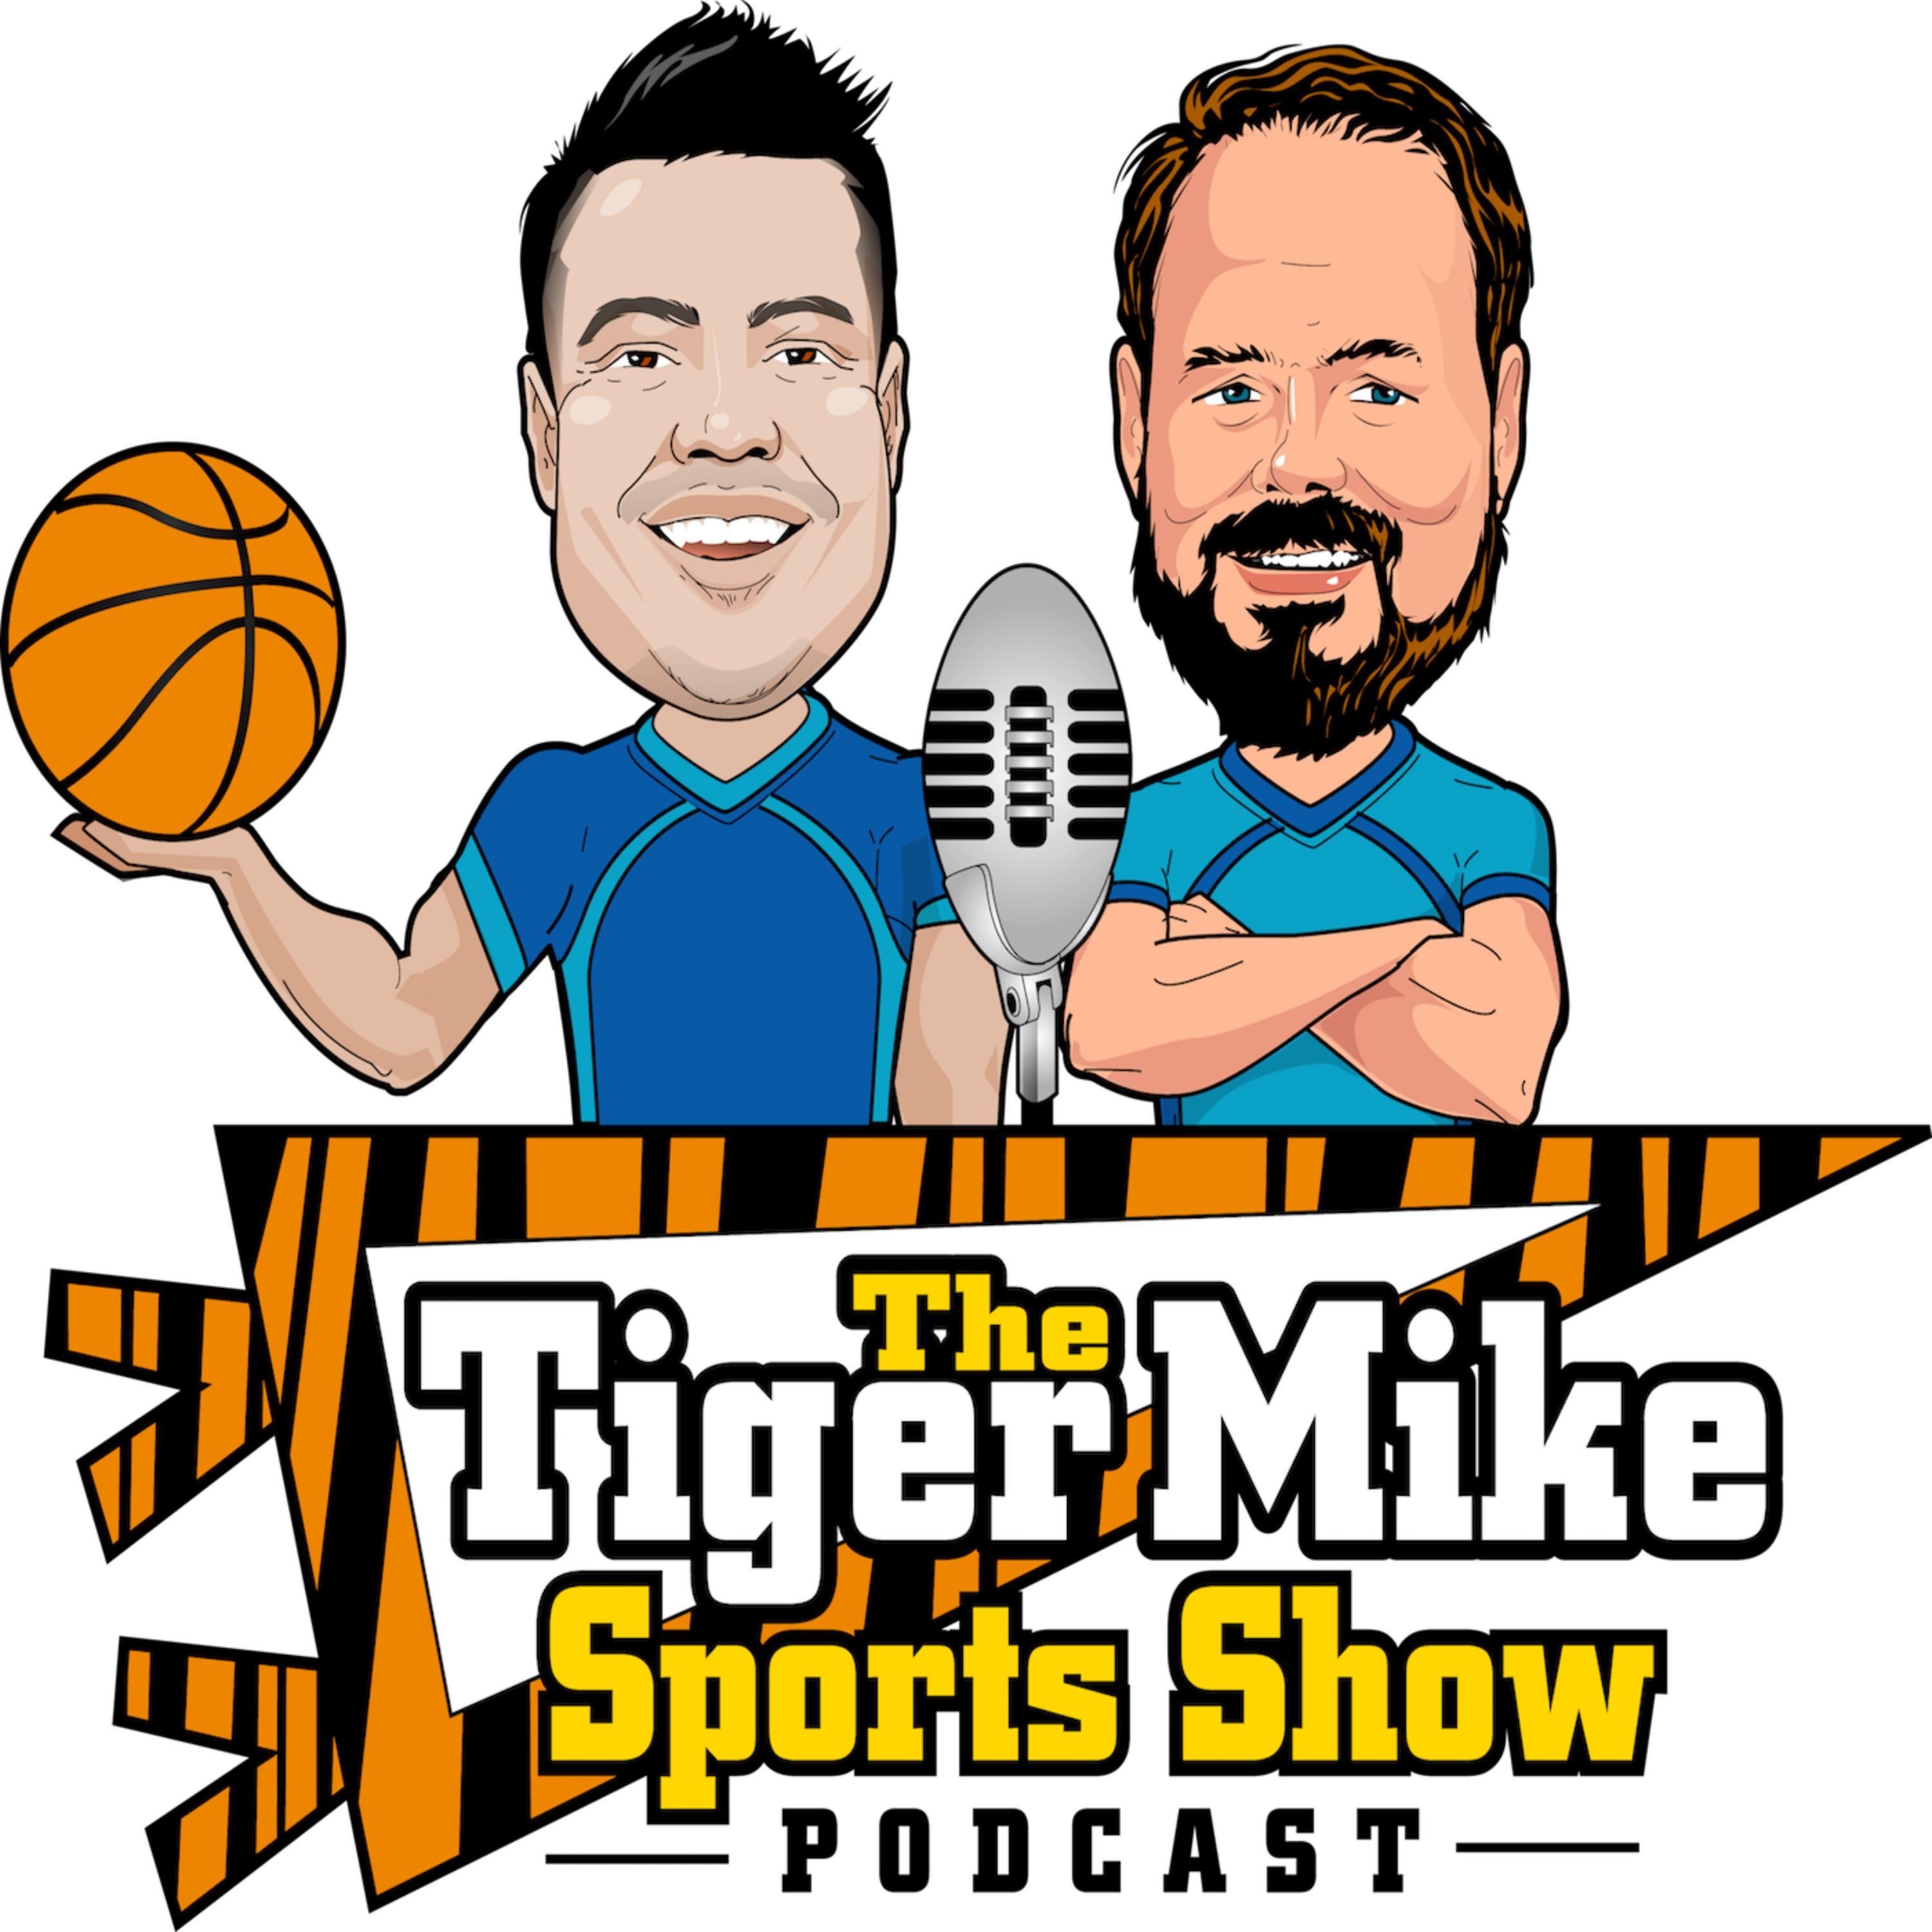 The Tiger Mike Sports Show Podcast - Sports Talk for Passionate Sports Fans